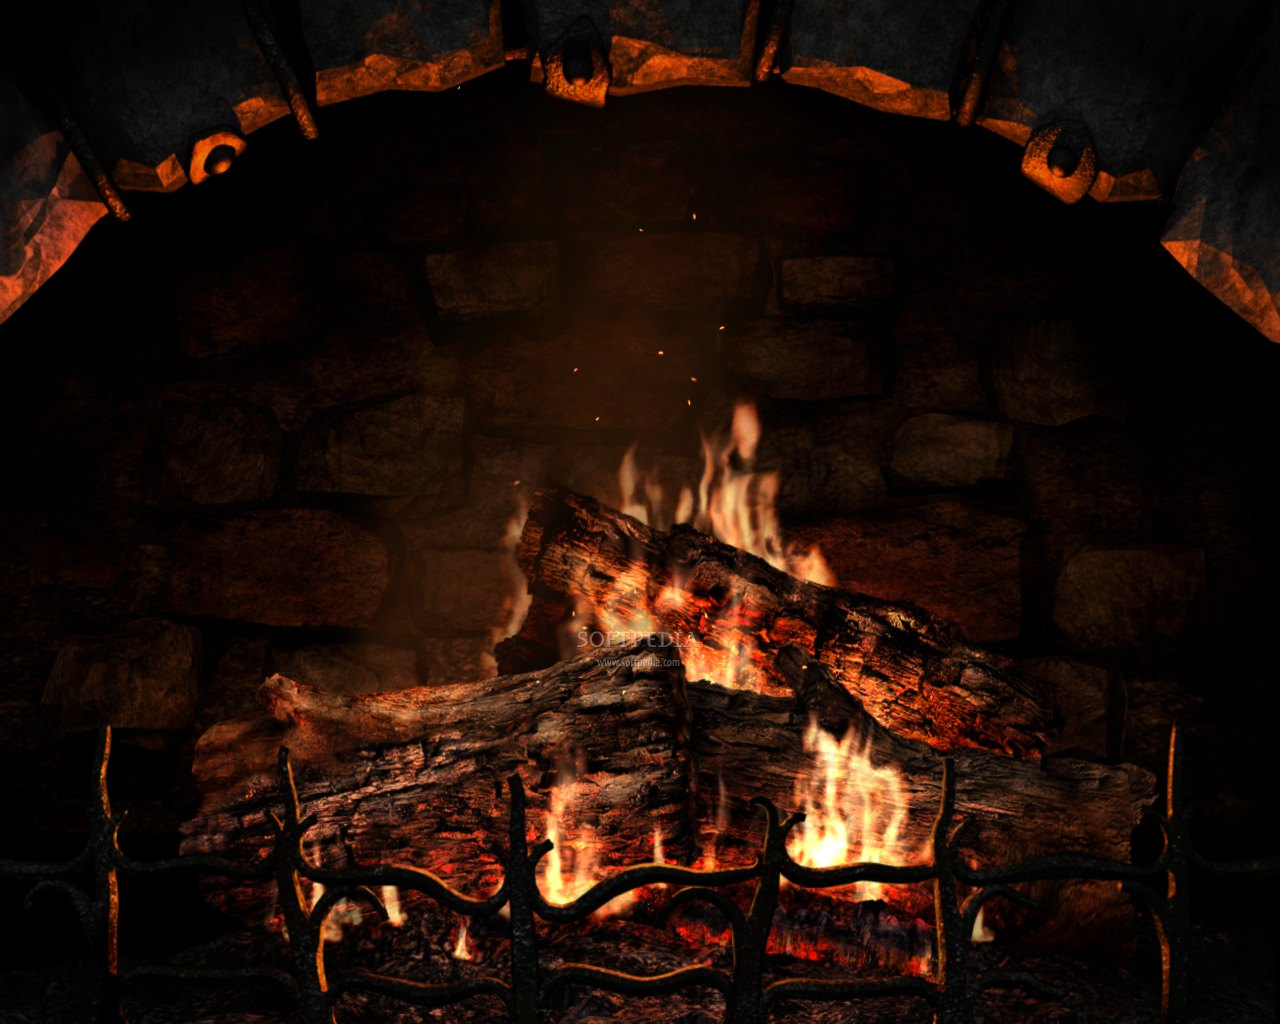 Download 44 Fireplace 100 Quality HD Wallpapers of 1280x1024